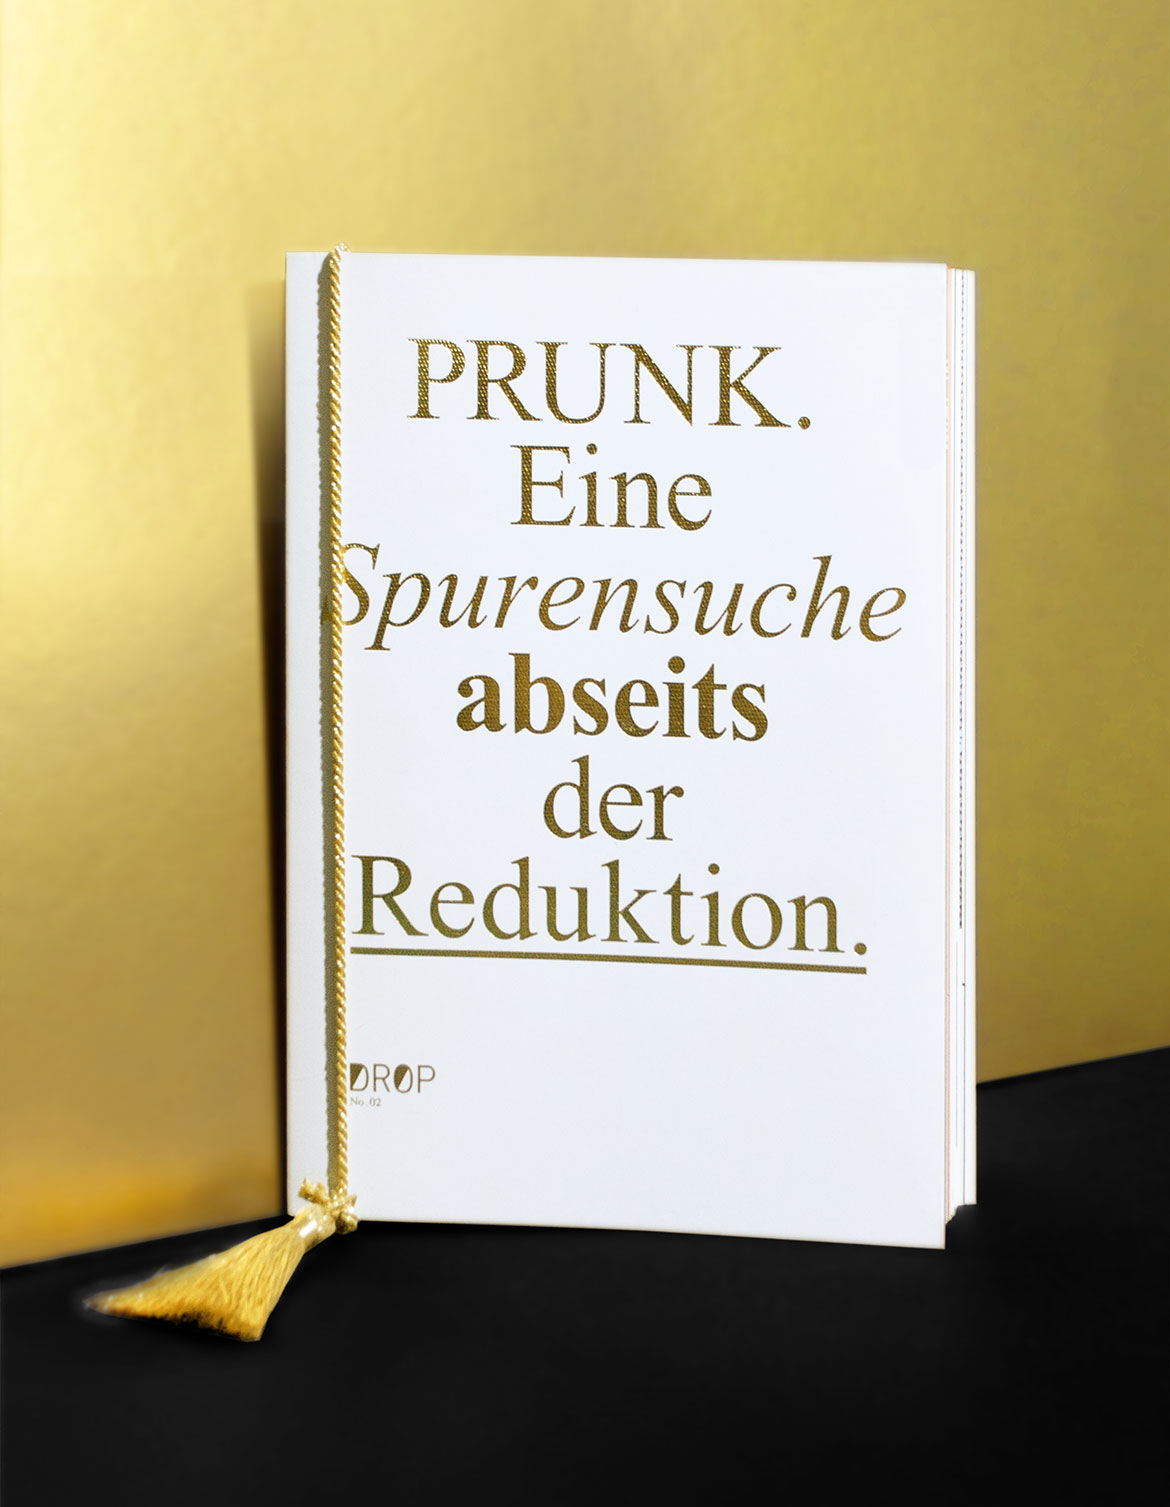 Drop_Prunk_06_web